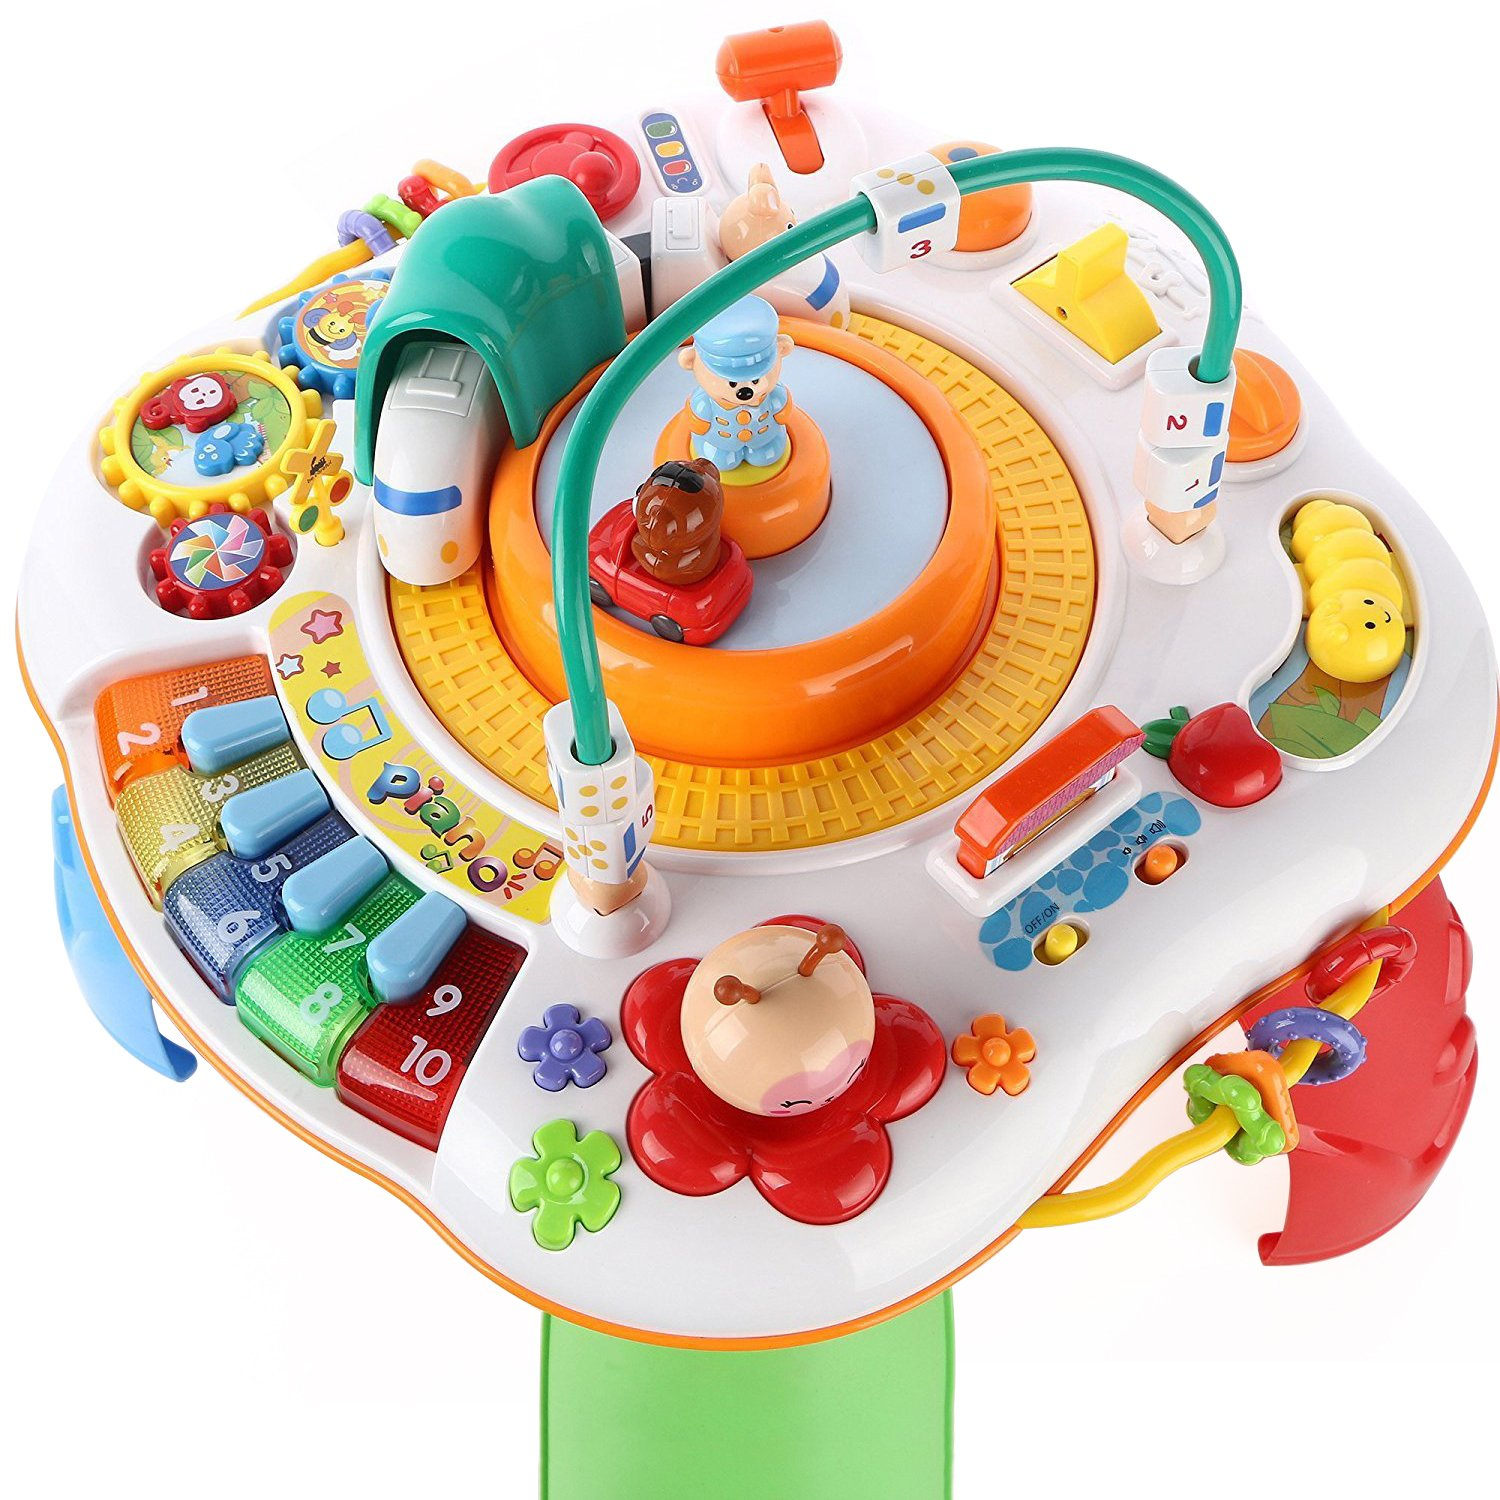 Mother & Kids Activity & Gear Multifunction Language Learning Table For Kids Baby Early Educational Toy Walker Tablet Reading Machine Puzzle Game Desk